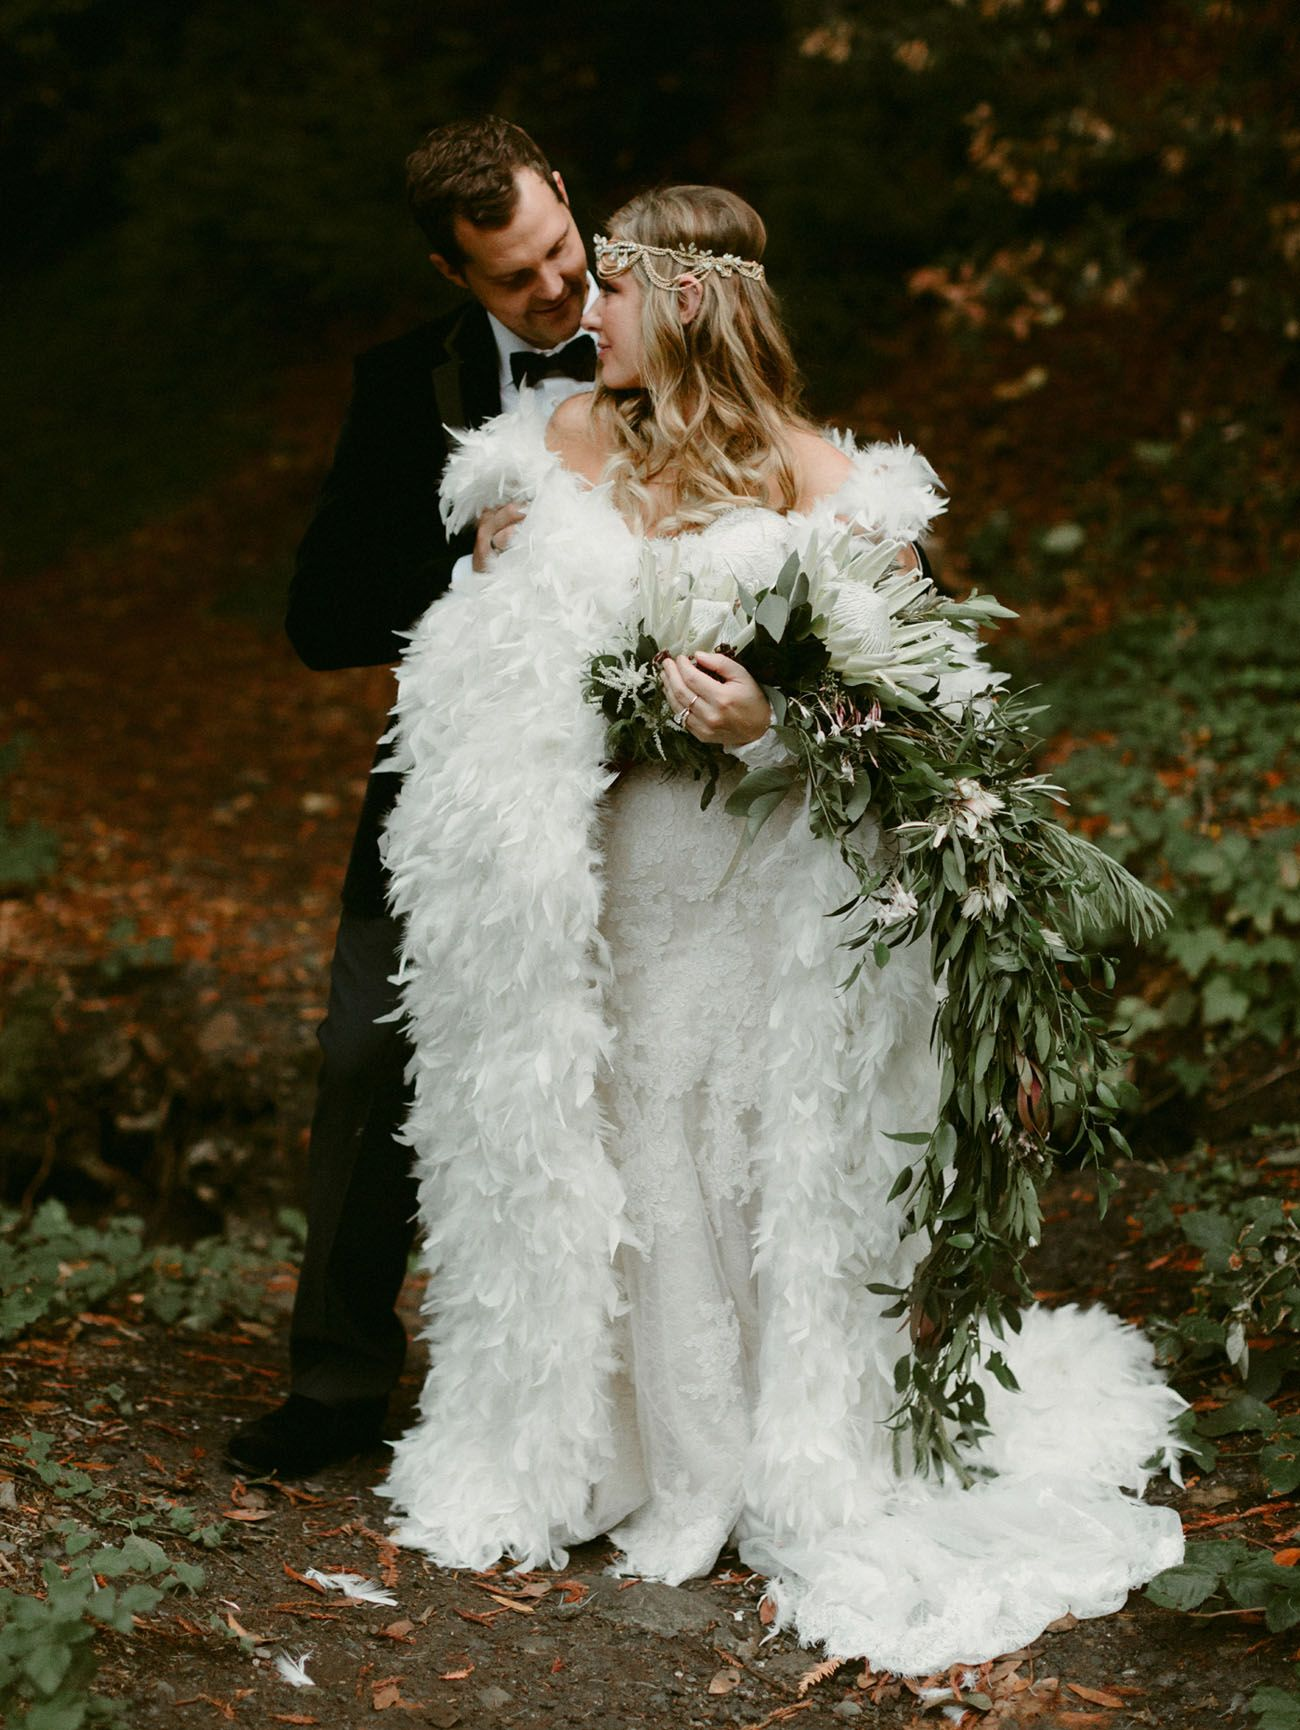 A fairytale forest wedding with a feather cape